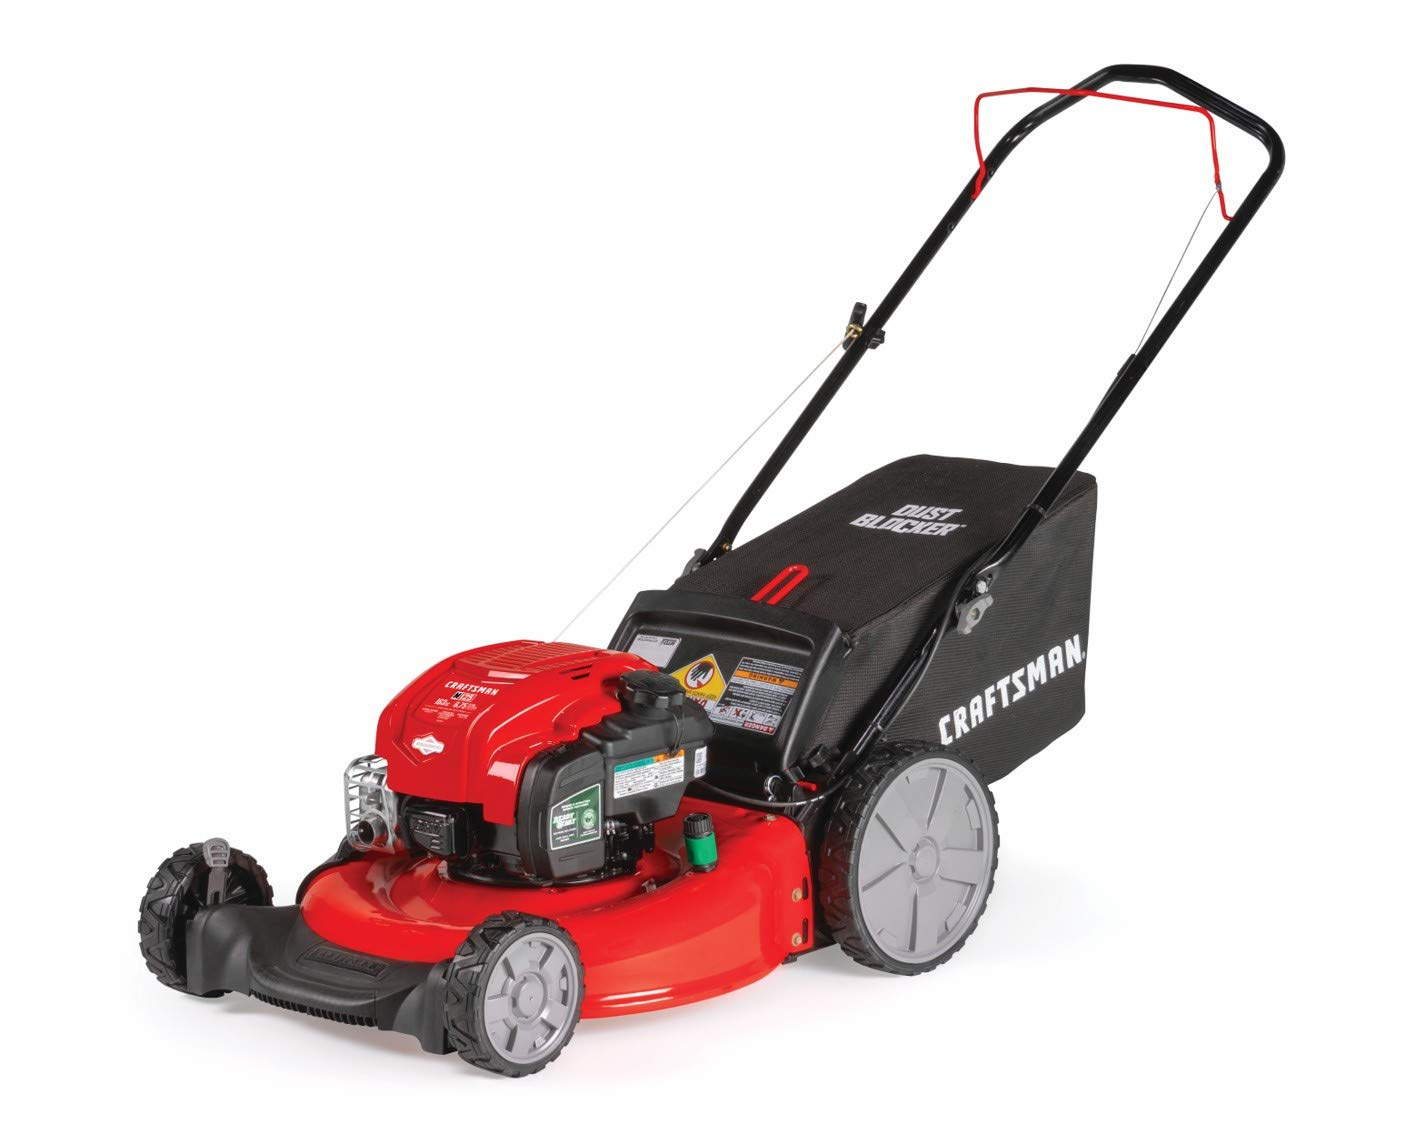 Craftsman M125 163cc Briggs Stratton 675 exi 21-Inch 3-in-1 Gas Powered Push Lawn Mower with Bagger